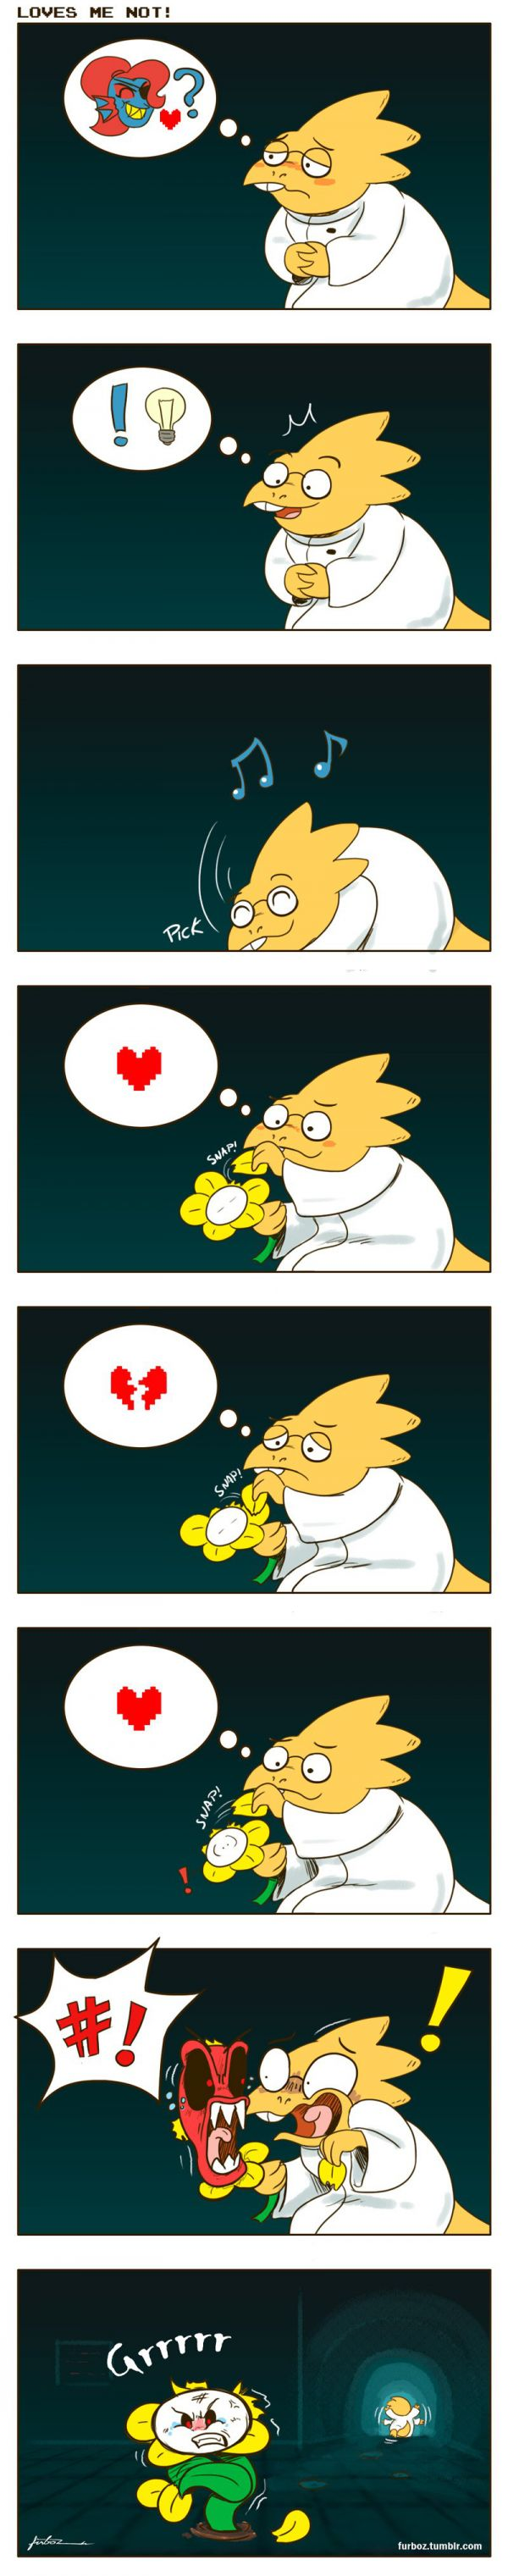 Alphys Y?<<<< I don't think she noticed poor Flowey that must really hurt..